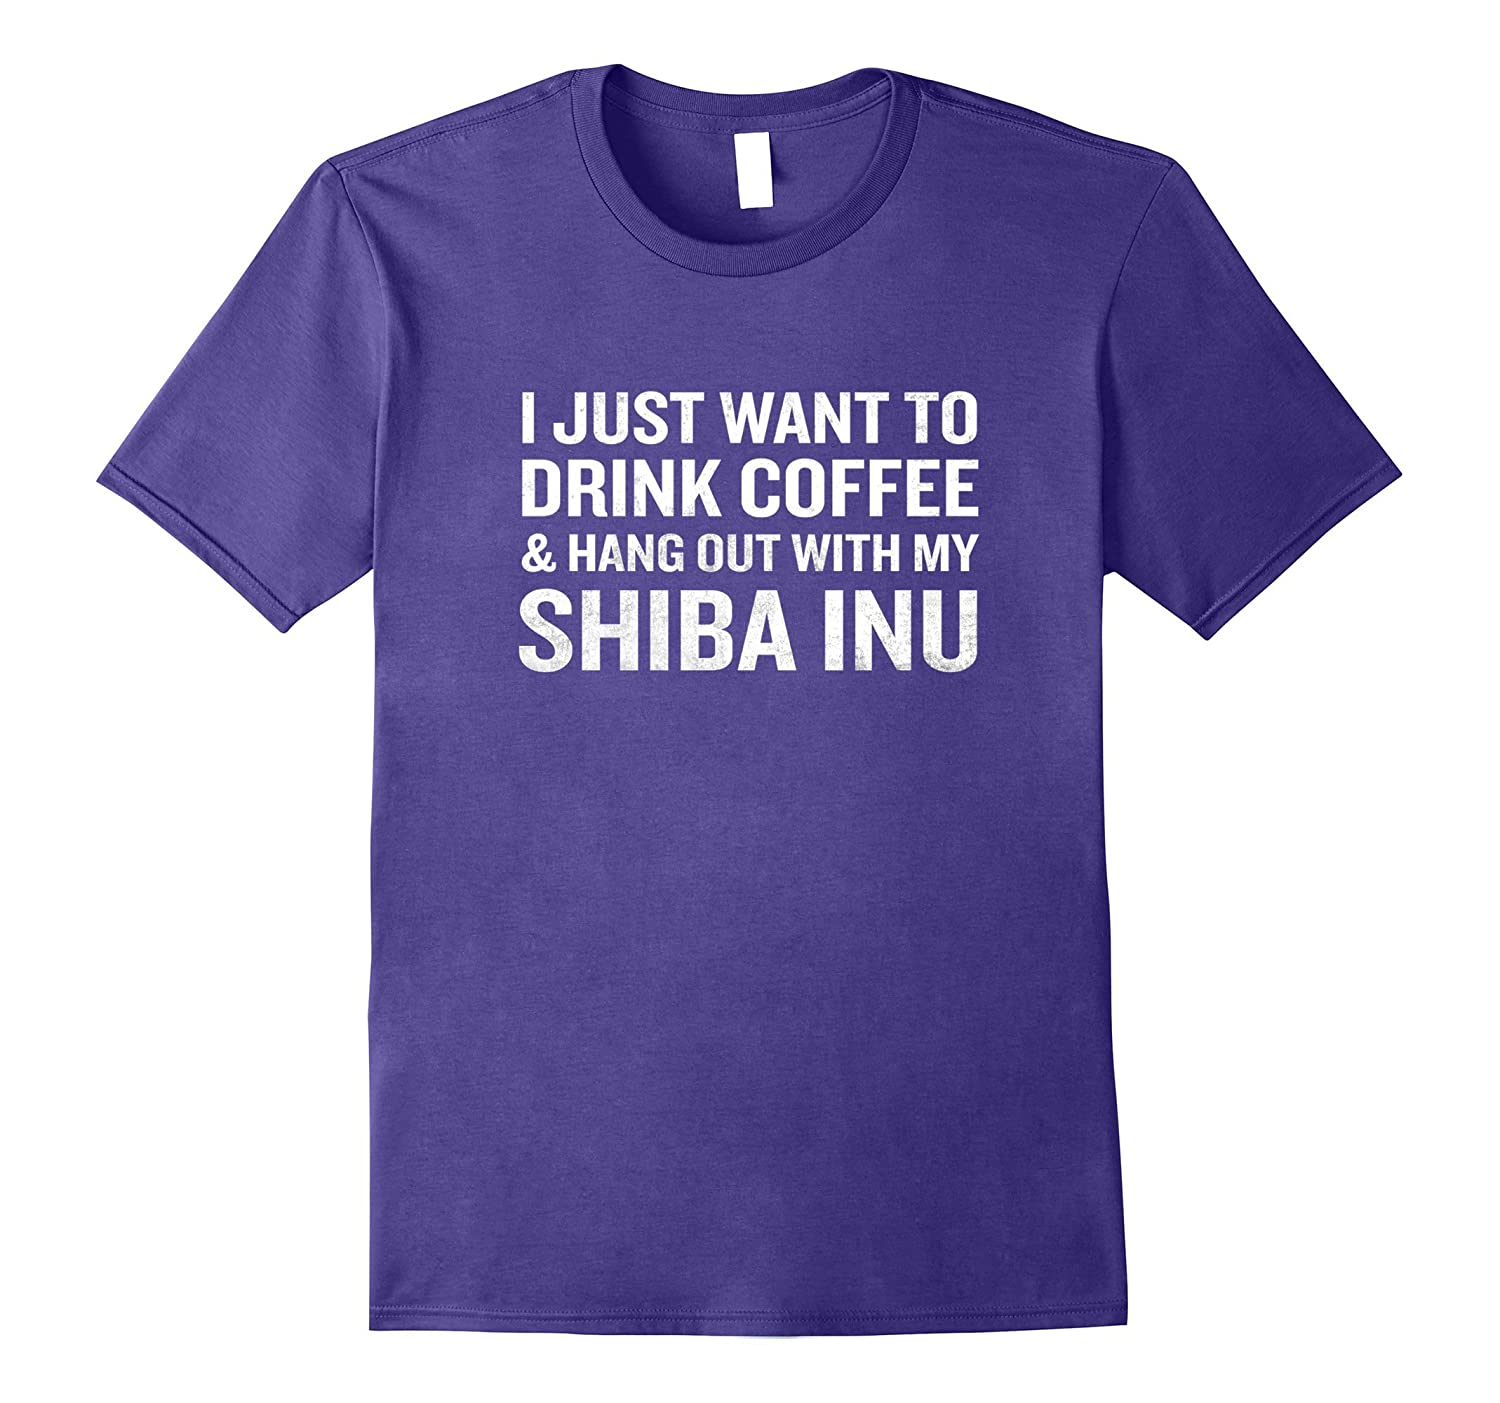 Just Want to Drink Coffee Hang Out With My Shiba Inu T-Shirt-Vaci